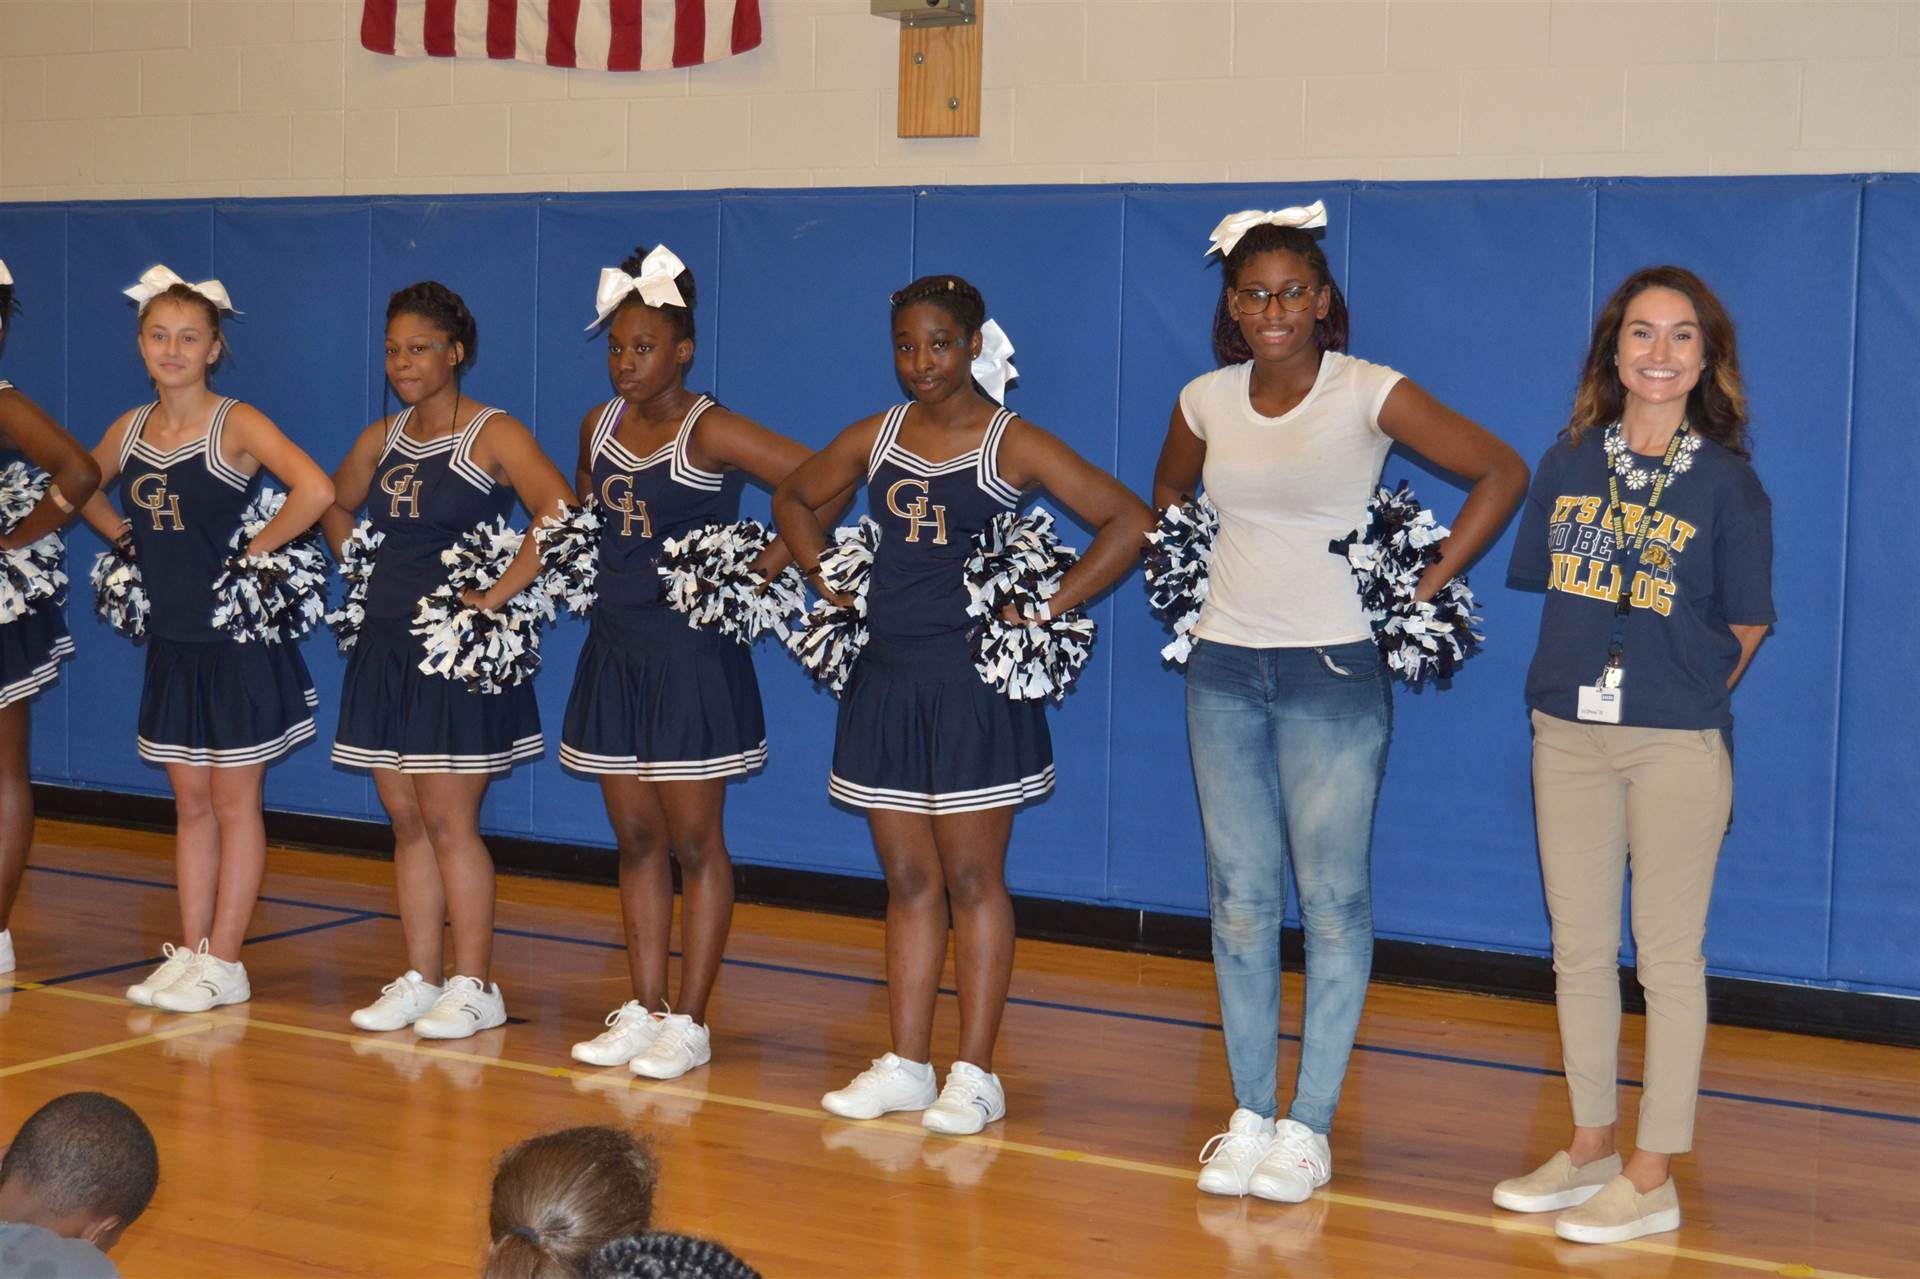 Middle School cheerleaders at the Maple Leaf PAWS assembly